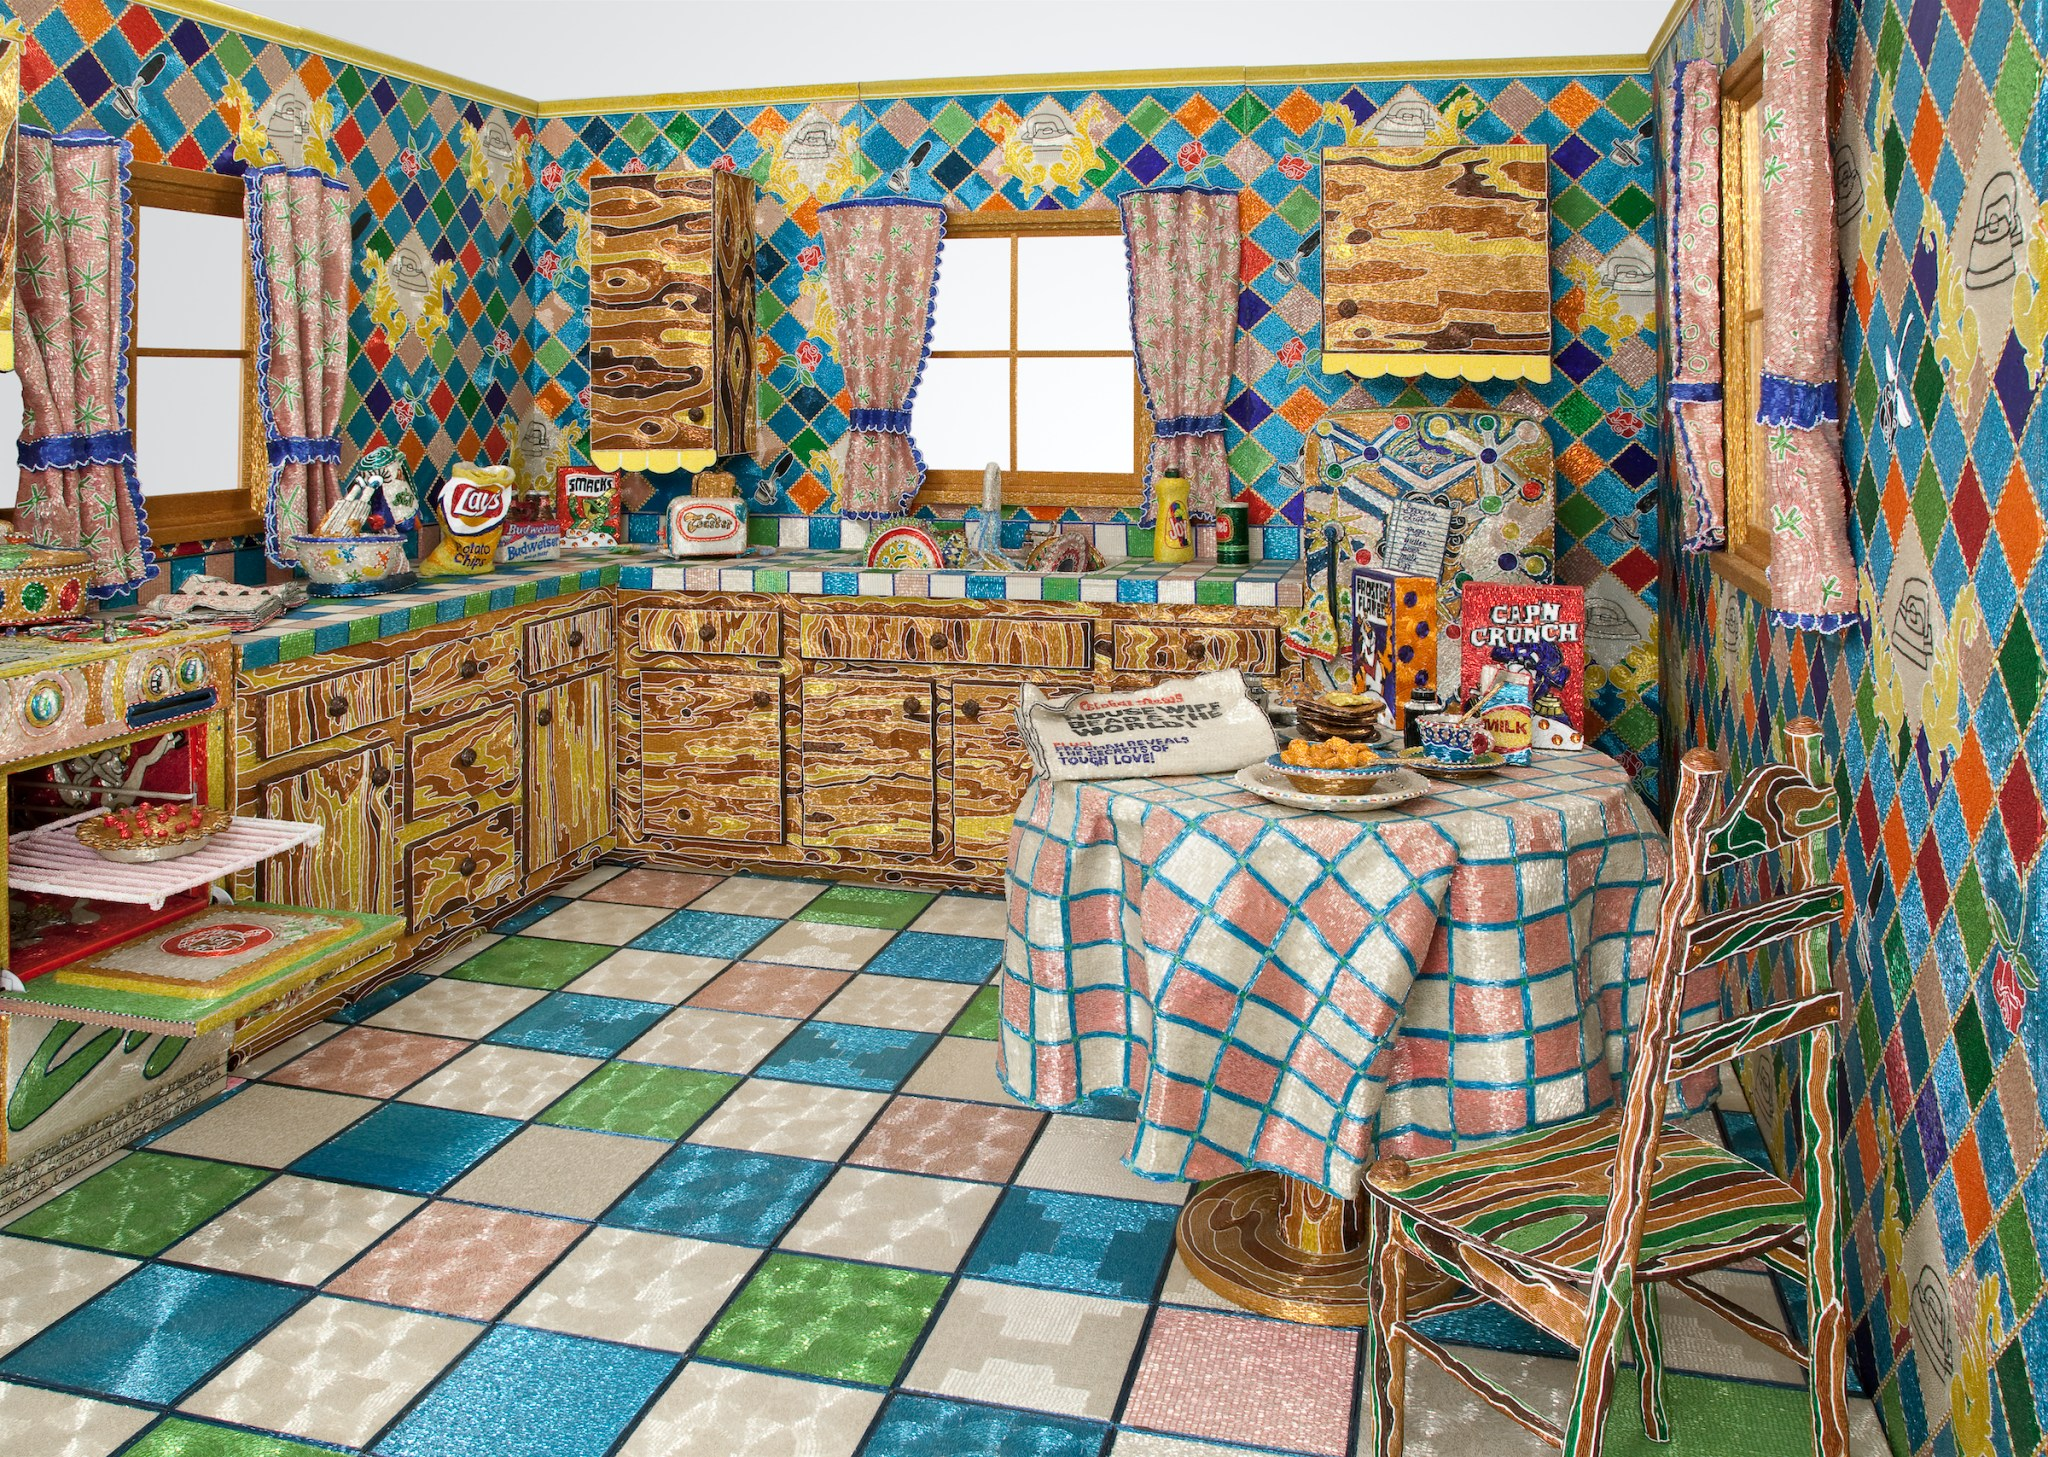 A colorful recreation of a traditional, homey kitchen made from glass beads and wire, complete with an open oven and a table that holds a box of Captain Crunch, a breakfast plate, and a newspaper.